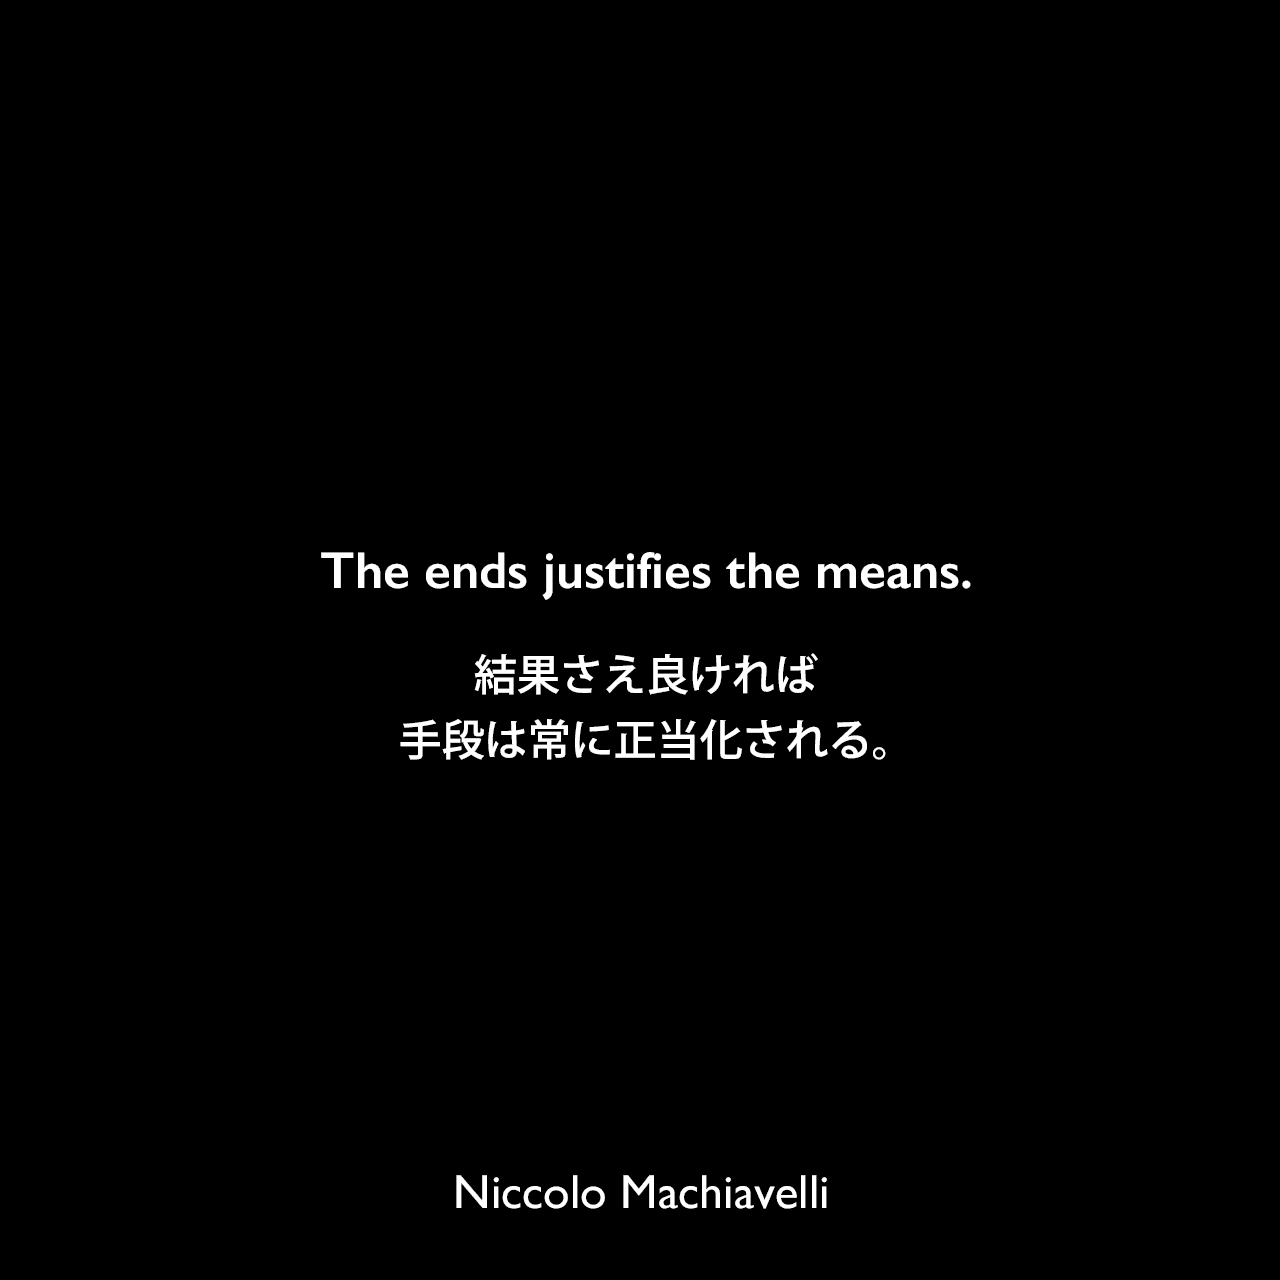 The ends justifies the means.結果さえ良ければ、手段は常に正当化される。Niccolo Machiavelli